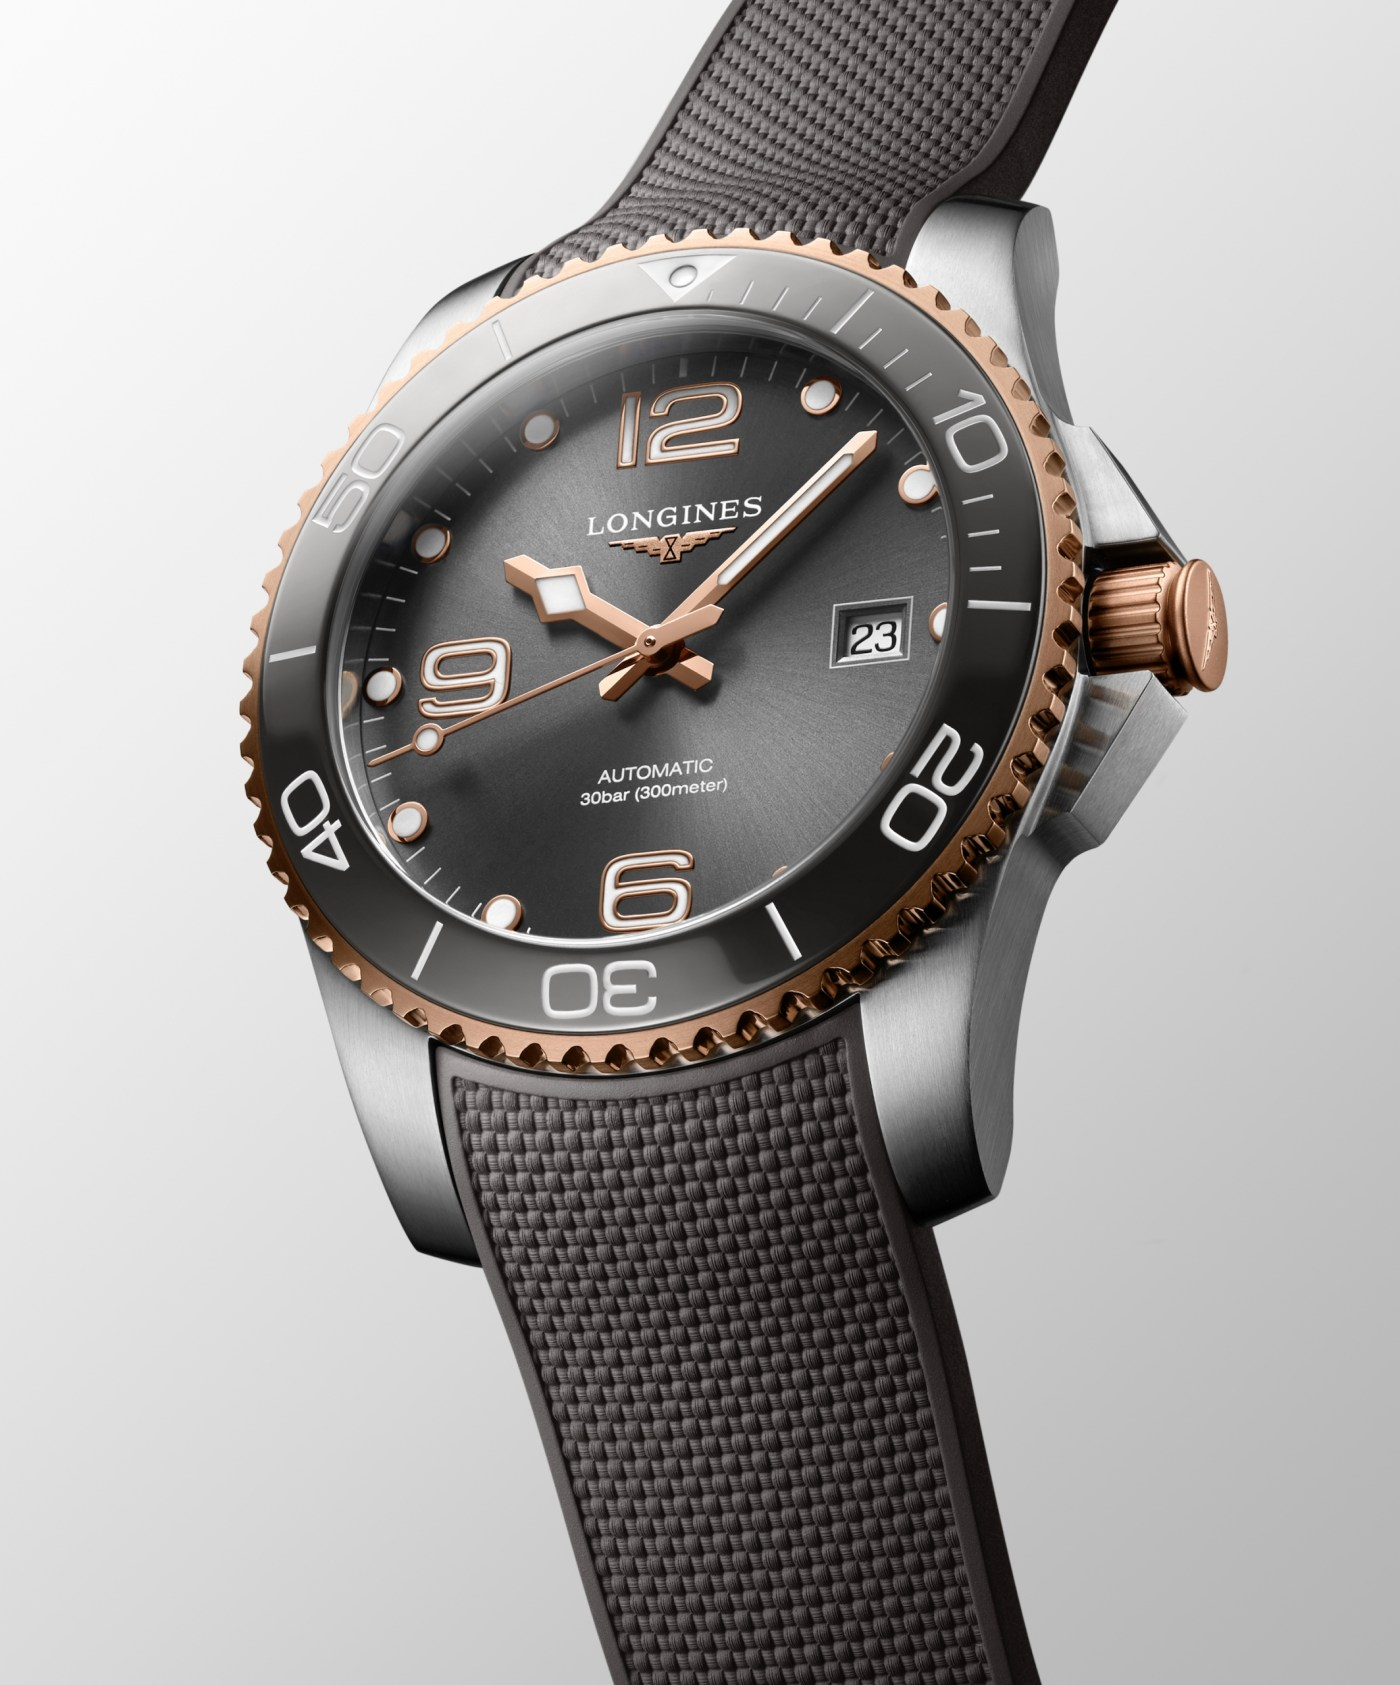 2021 HydroConquest Two-Tone Dive Watches